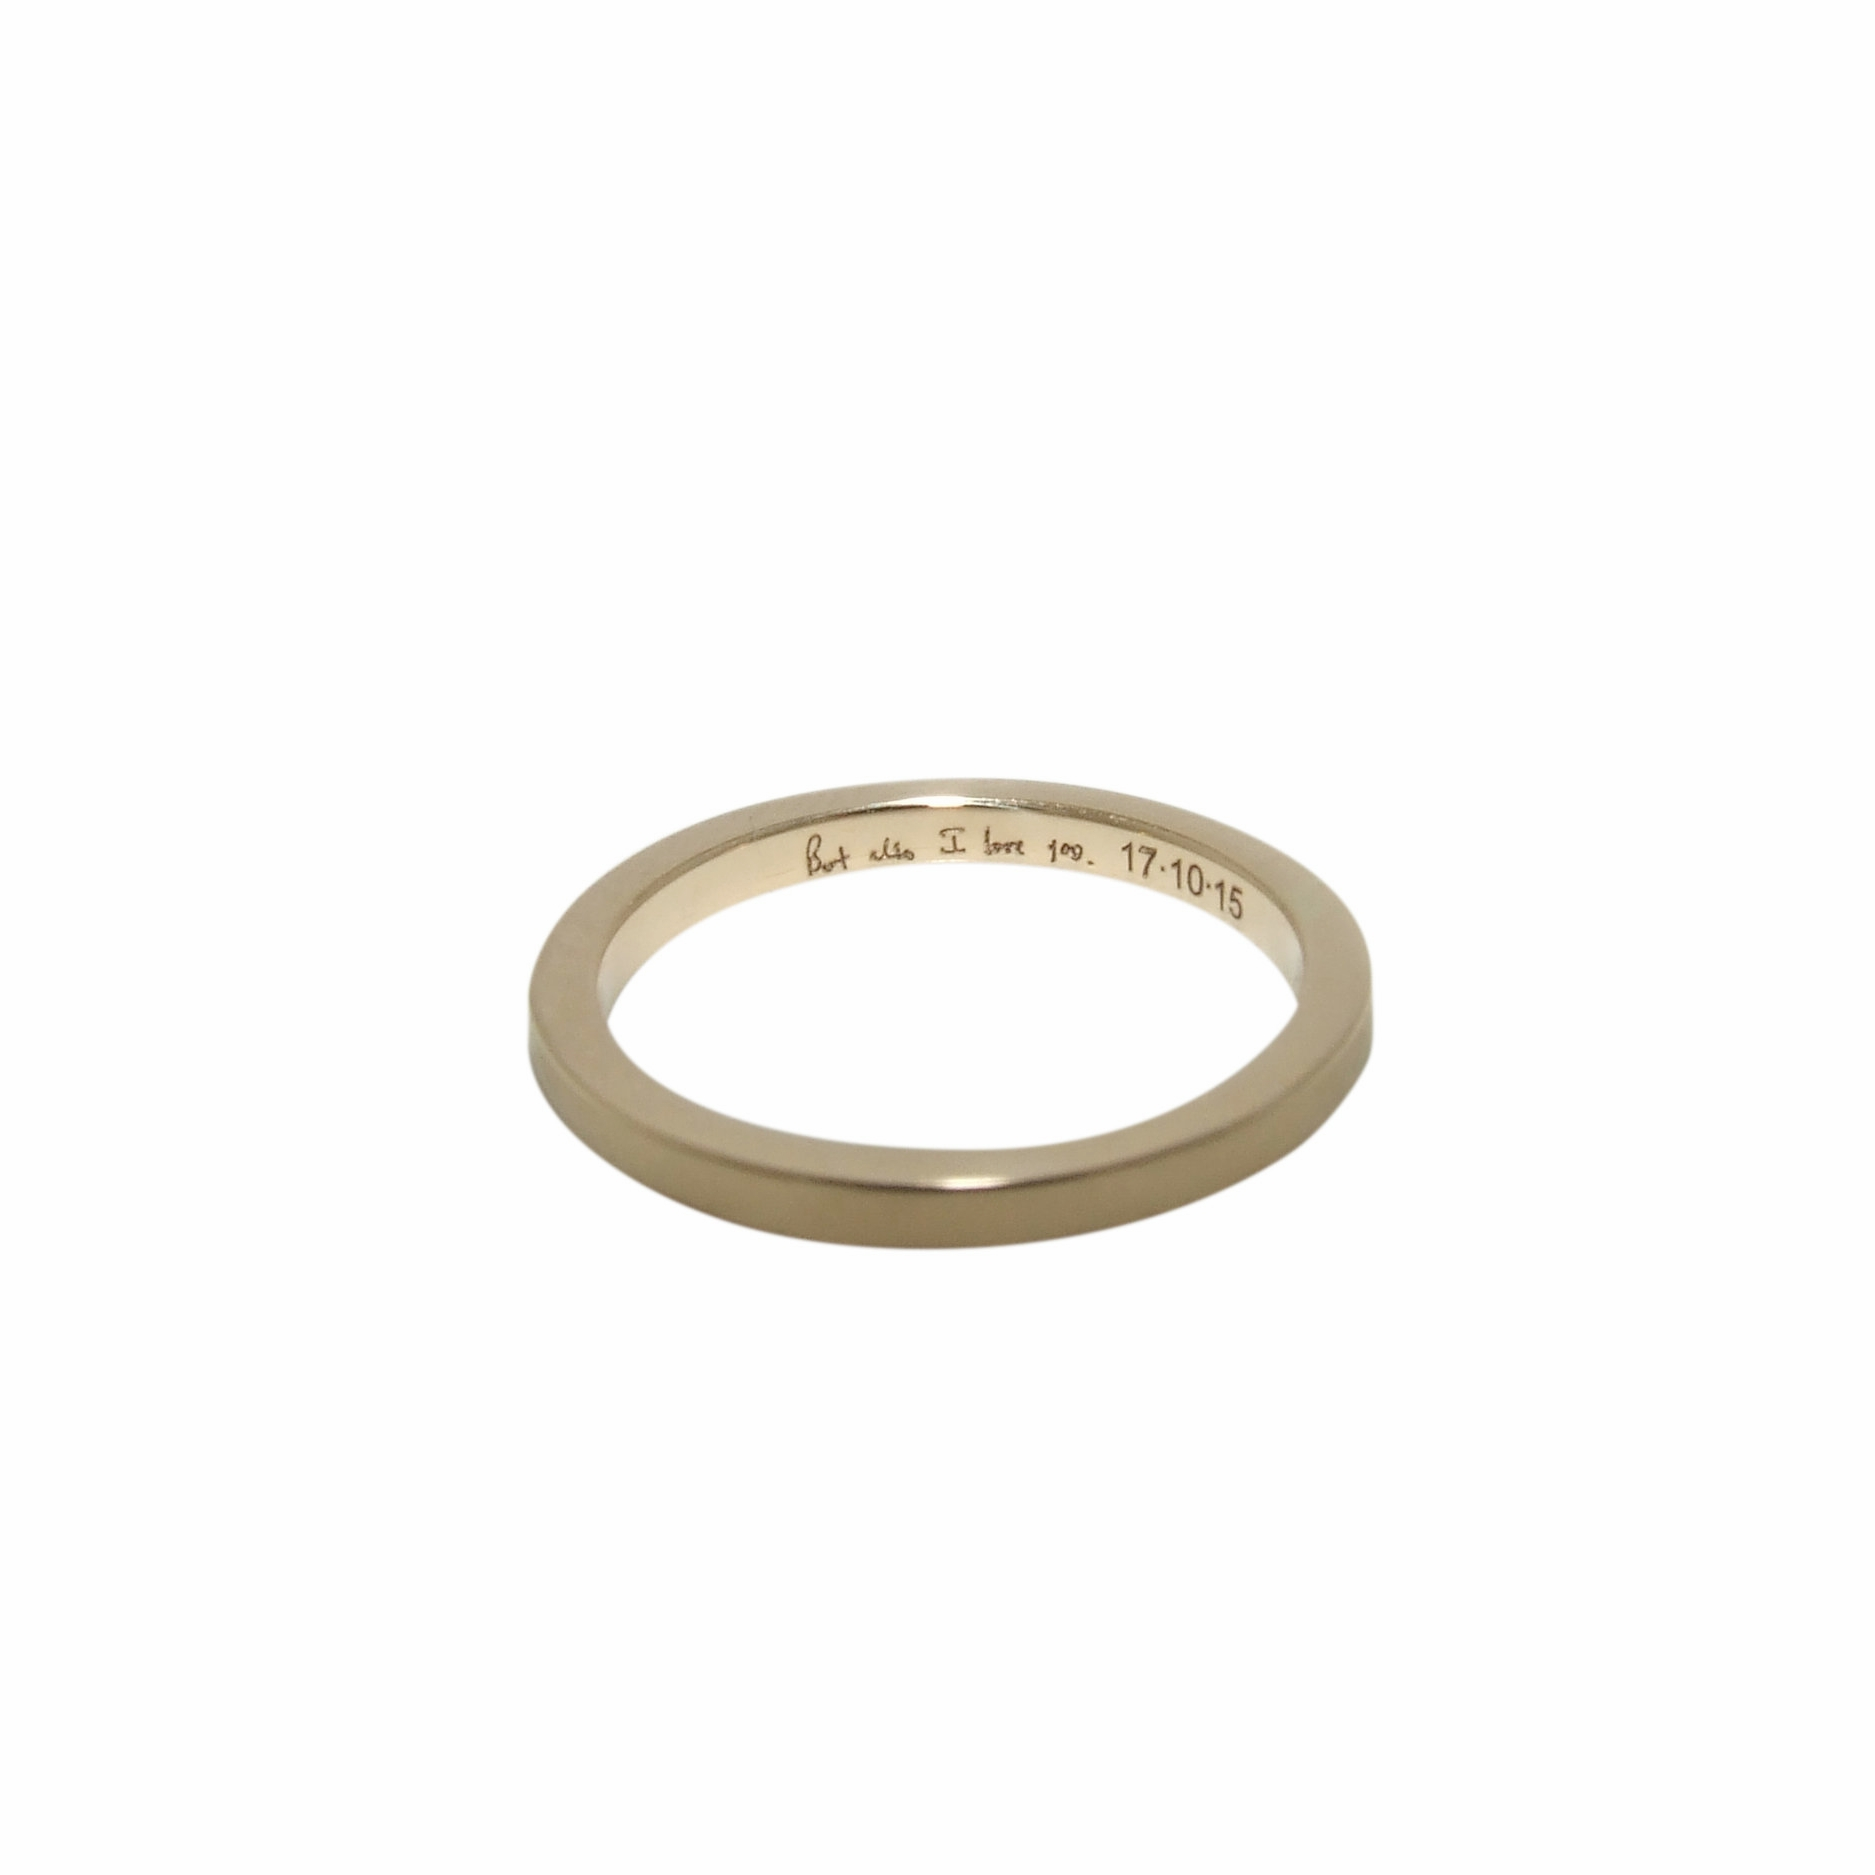 14k yellow narrow wedding band with personalized engraving